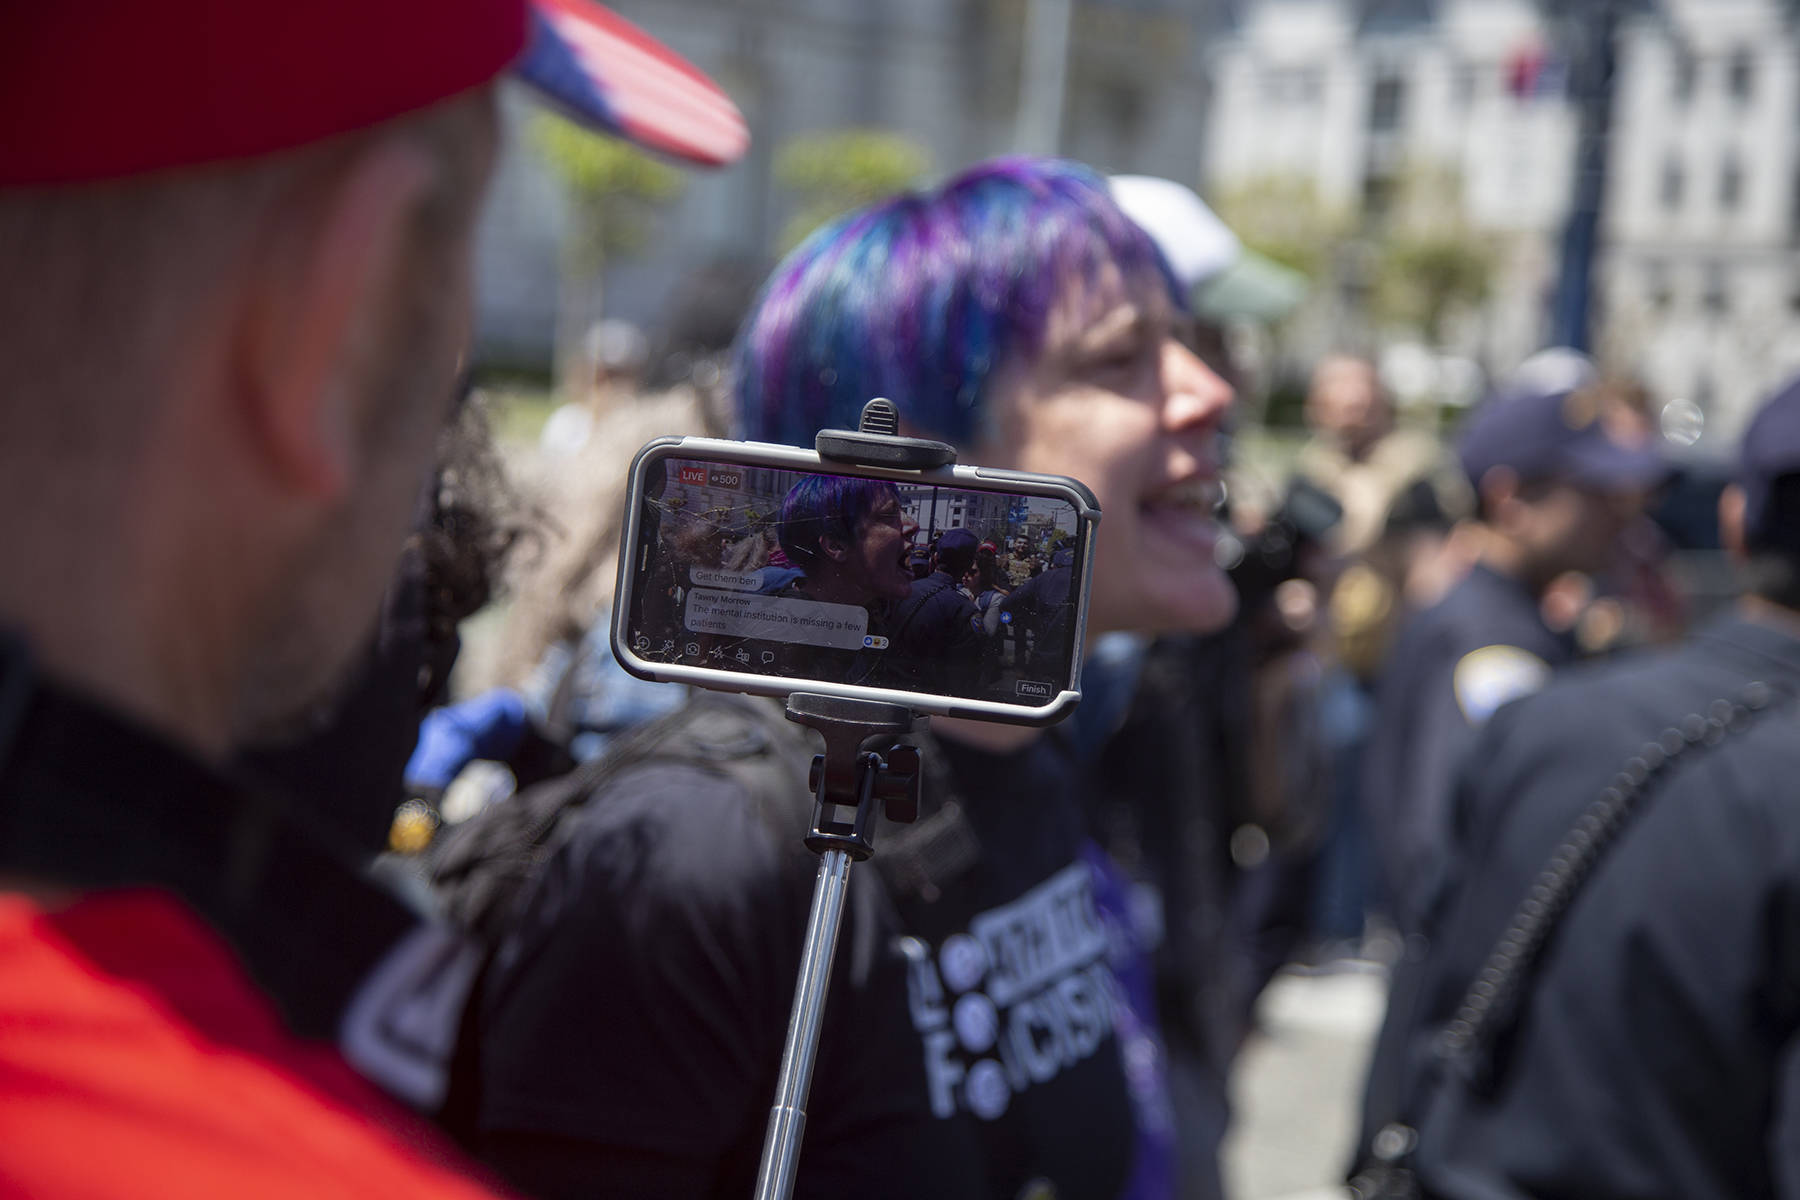 """A man wearing MAGA gear records counter protester Banasidhe on Facebook Live during the """"Demand Free Speech"""" rally on City Hall steps on Friday, May 3, 2019. (Ellie Doyen/Special to S.F. Examiner)"""